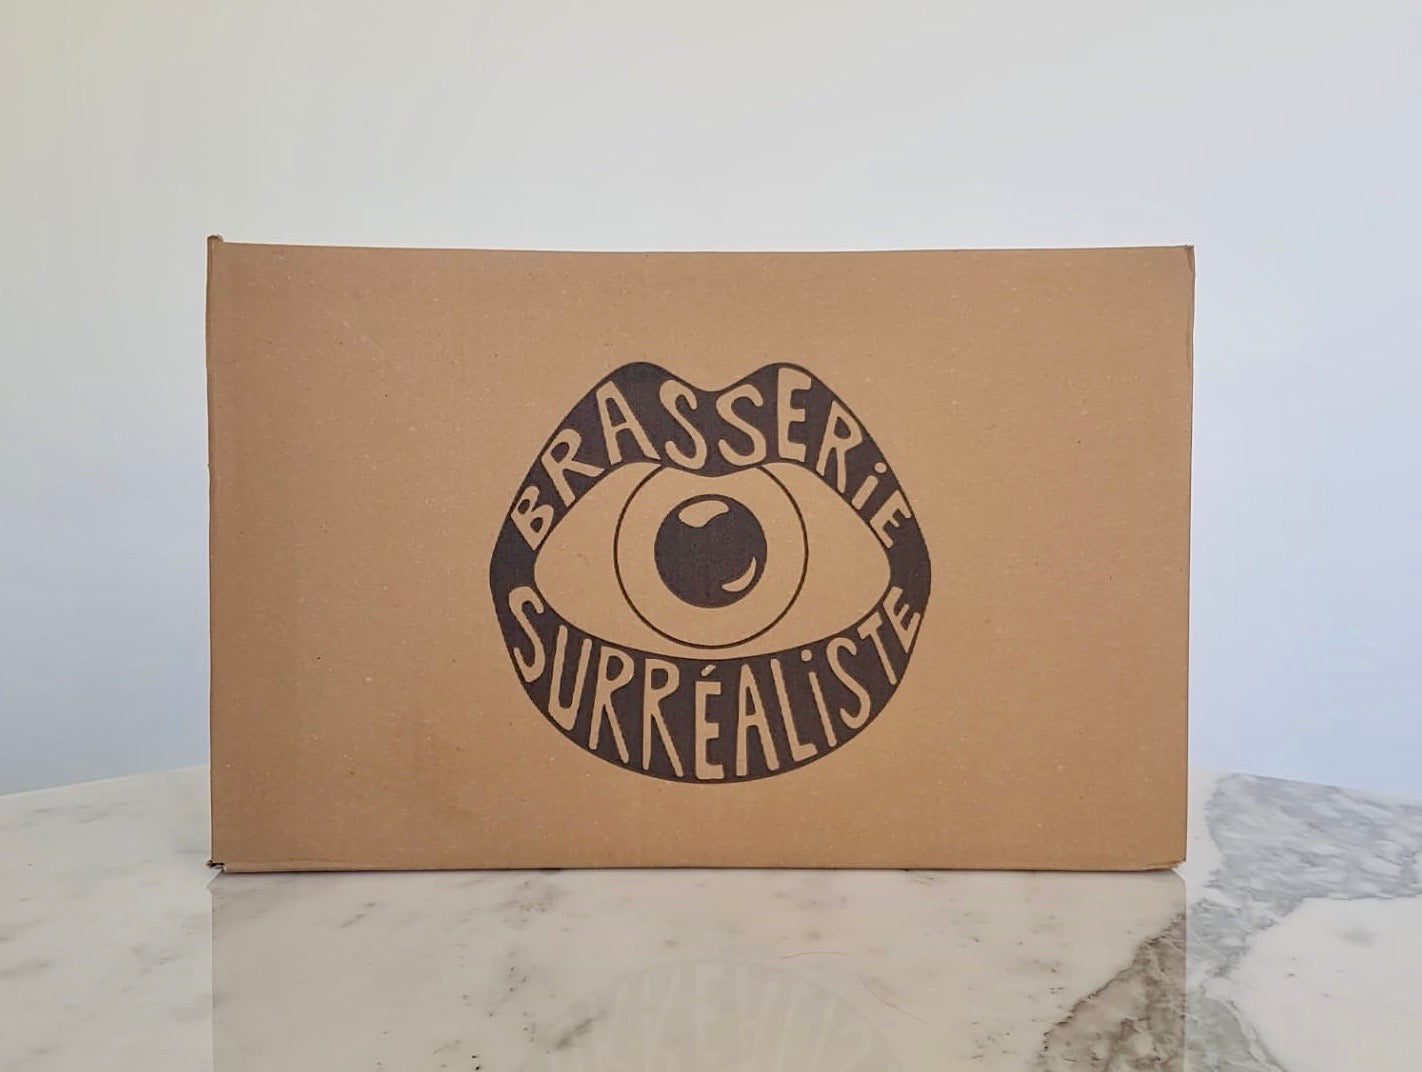 Surréaliste - Case of 24 - Brasserie Surréaliste